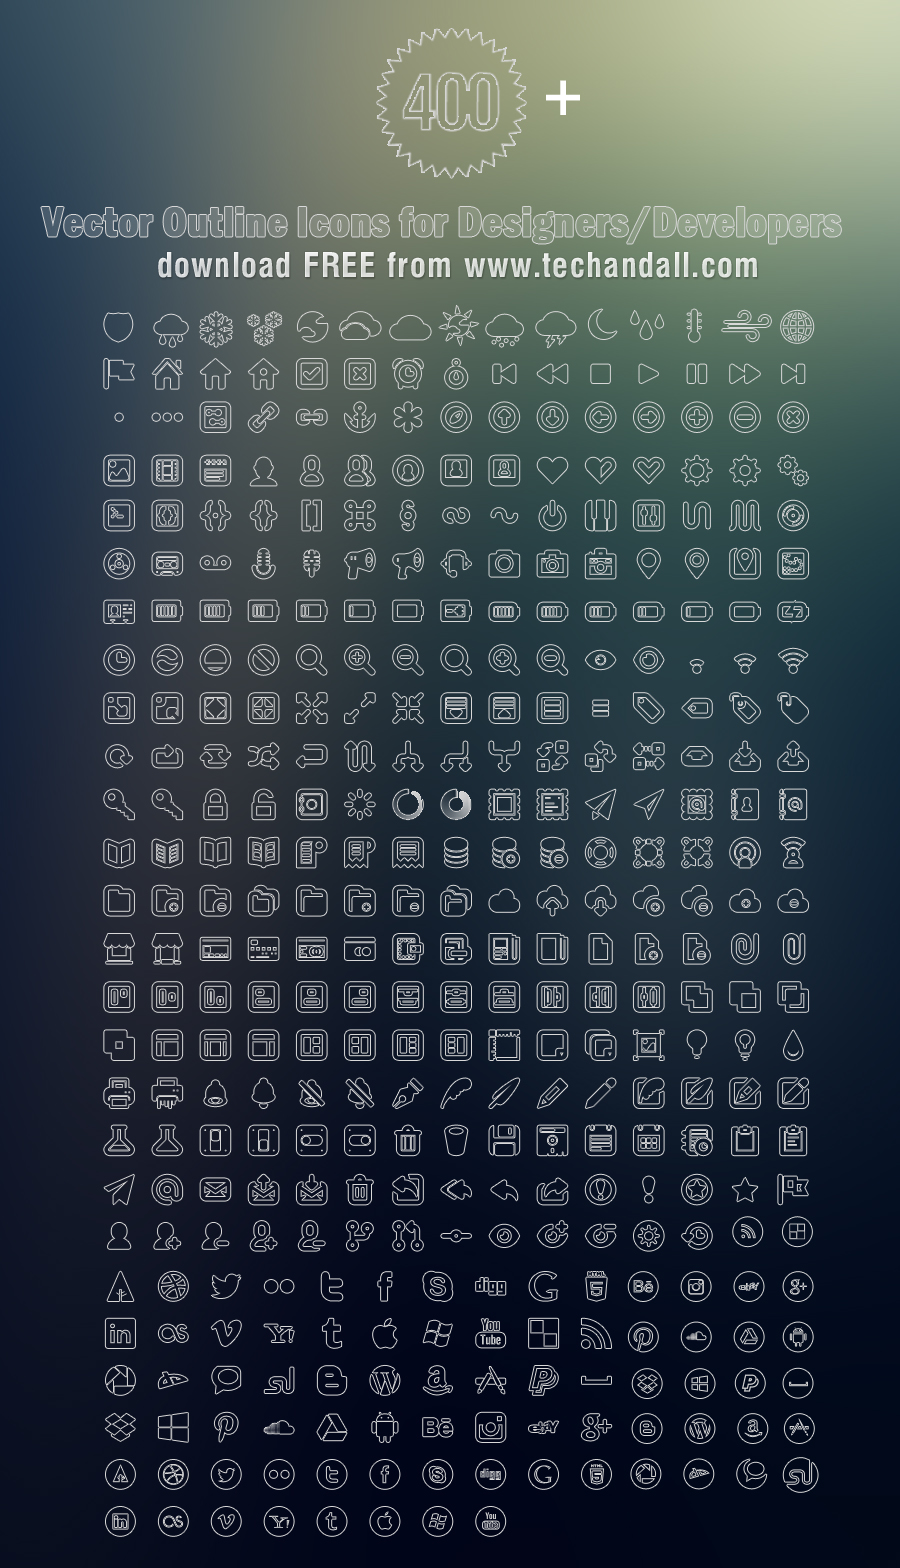 TechAndAll_400_Plus_vector_outline_icons